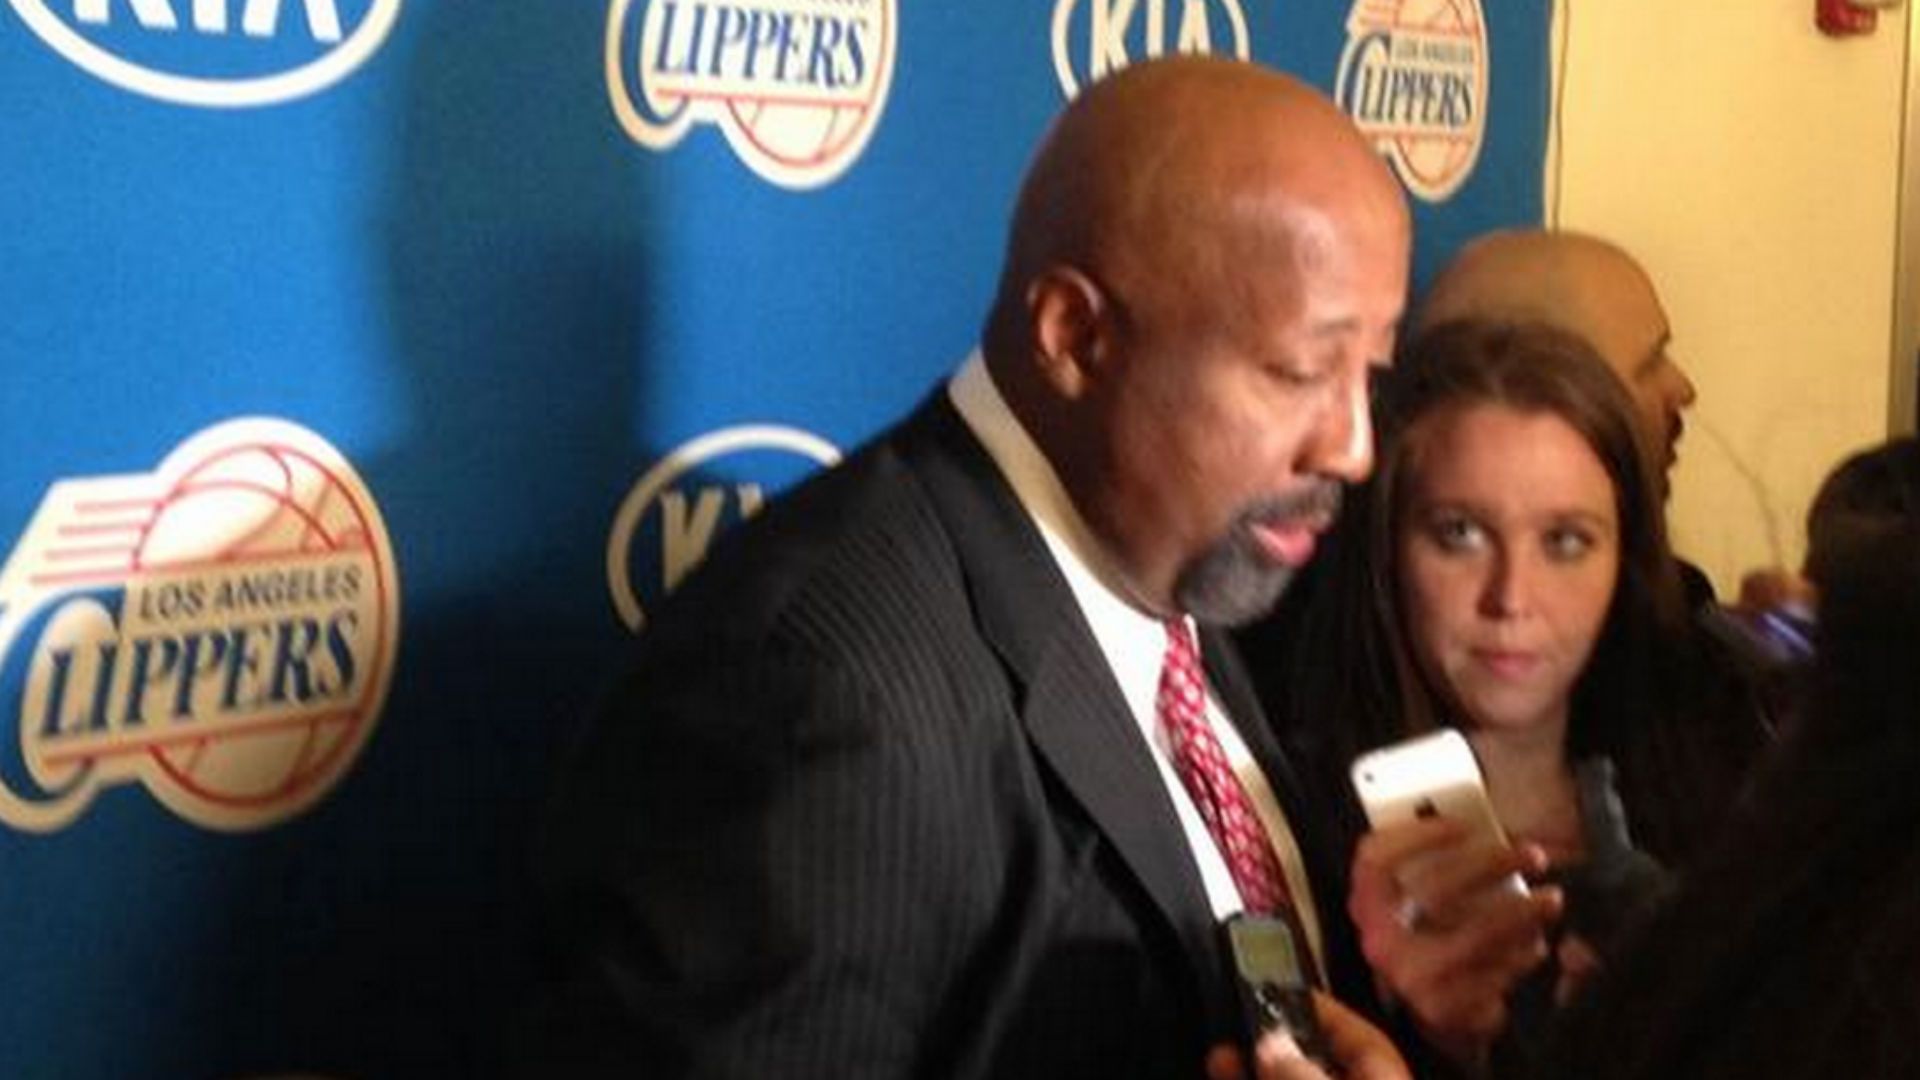 Doc Rivers lets Mike Woodson handle press conference after